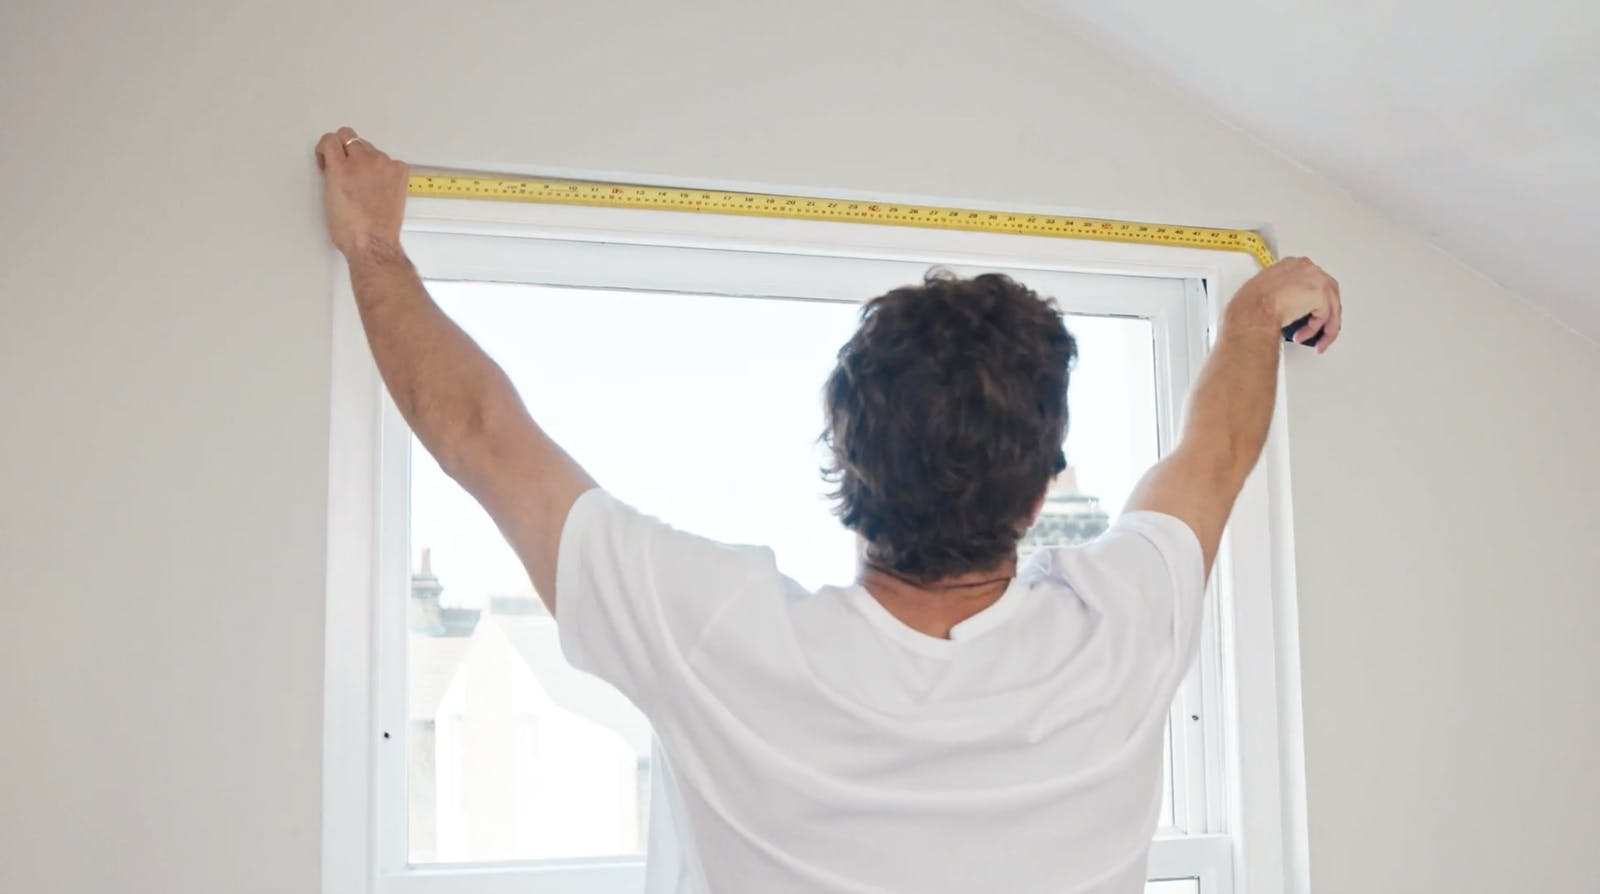 Man holding metal measuring tape to measure the recess of a window